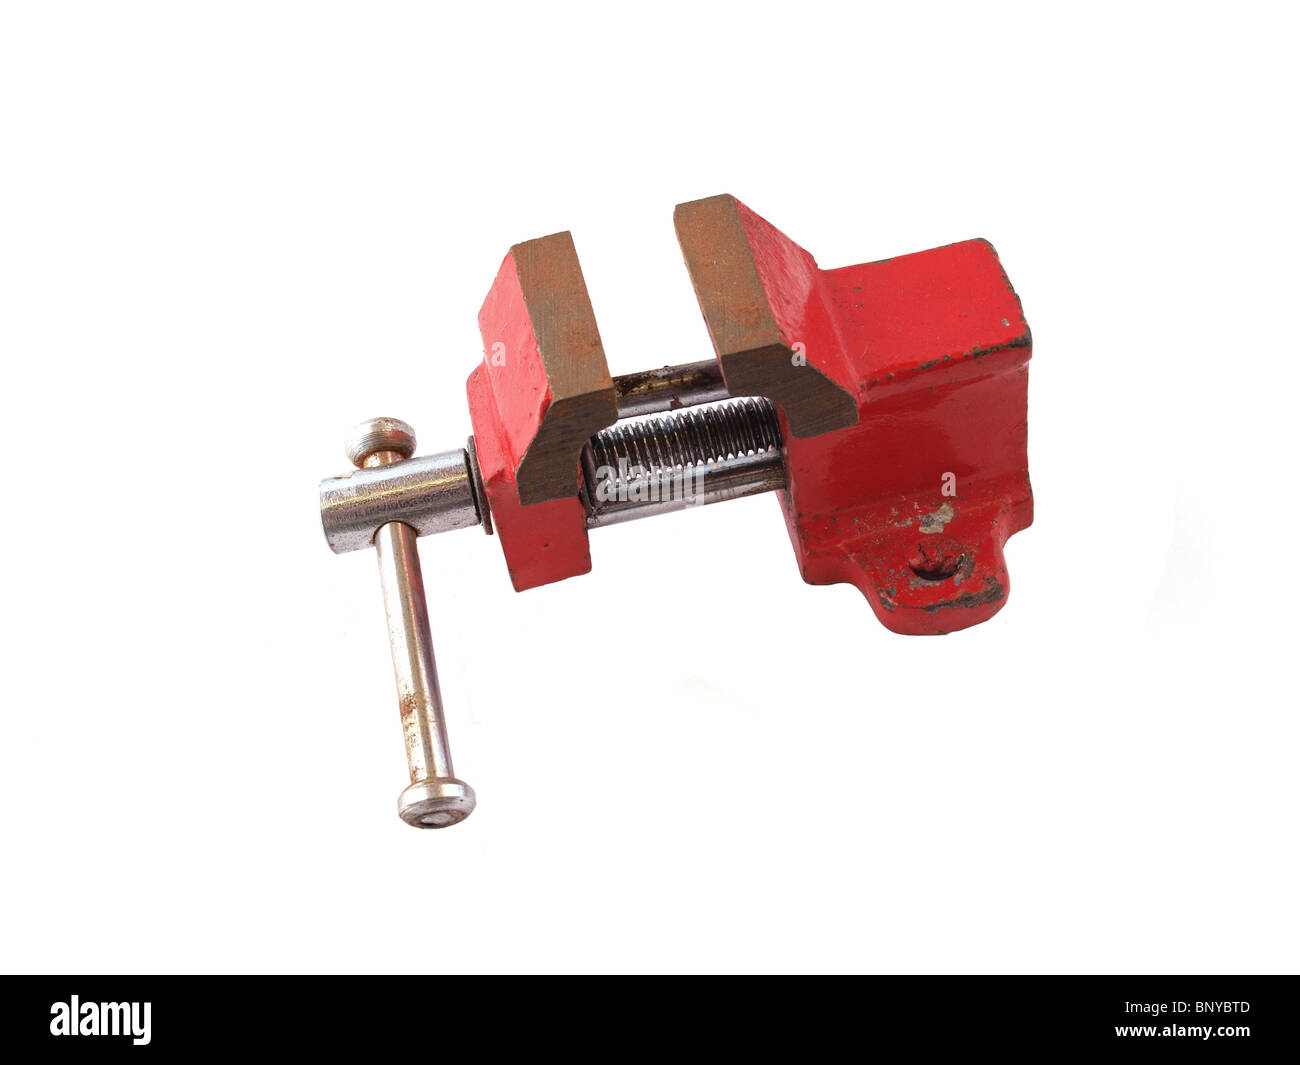 Red vice on an isolated white background. - Stock Image